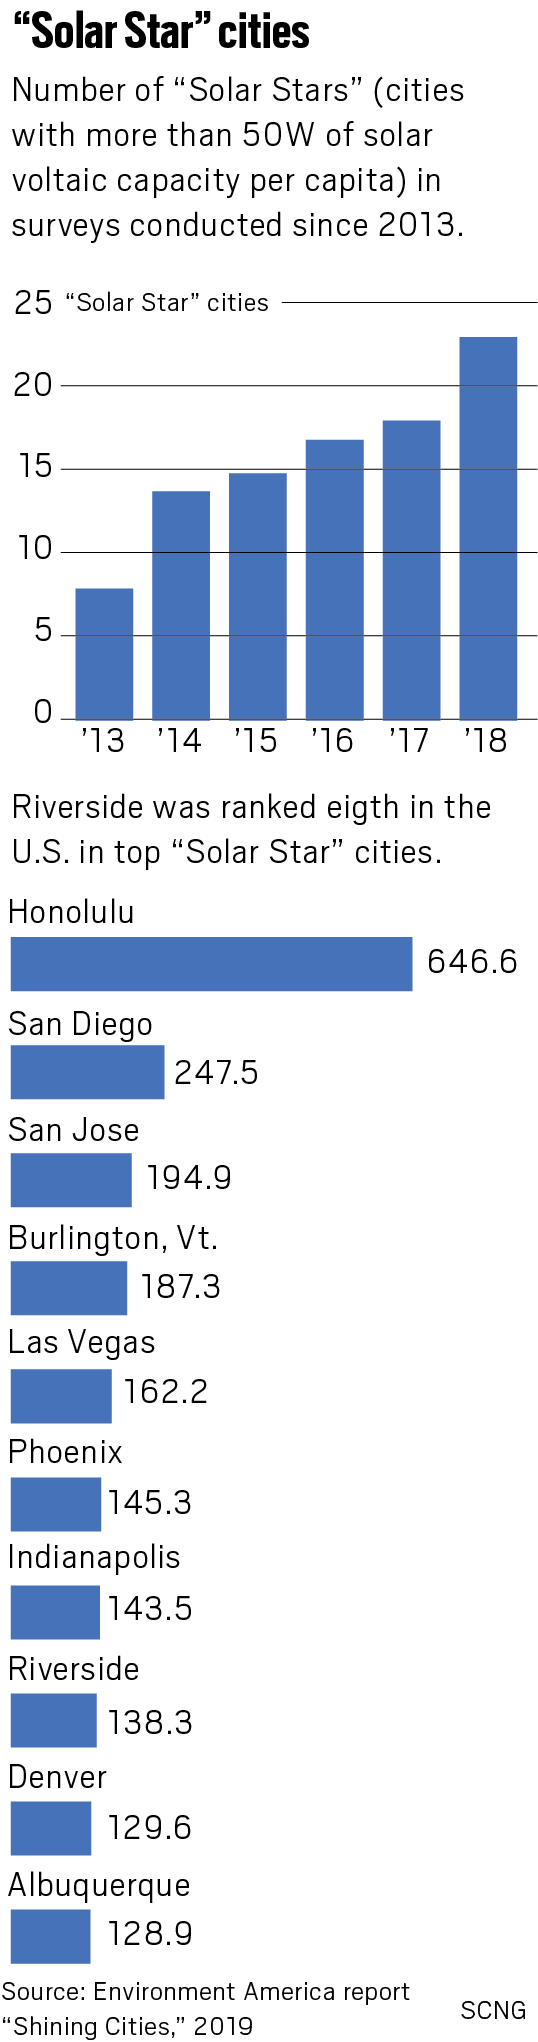 LA leads nation in solar power, Riverside is up and coming